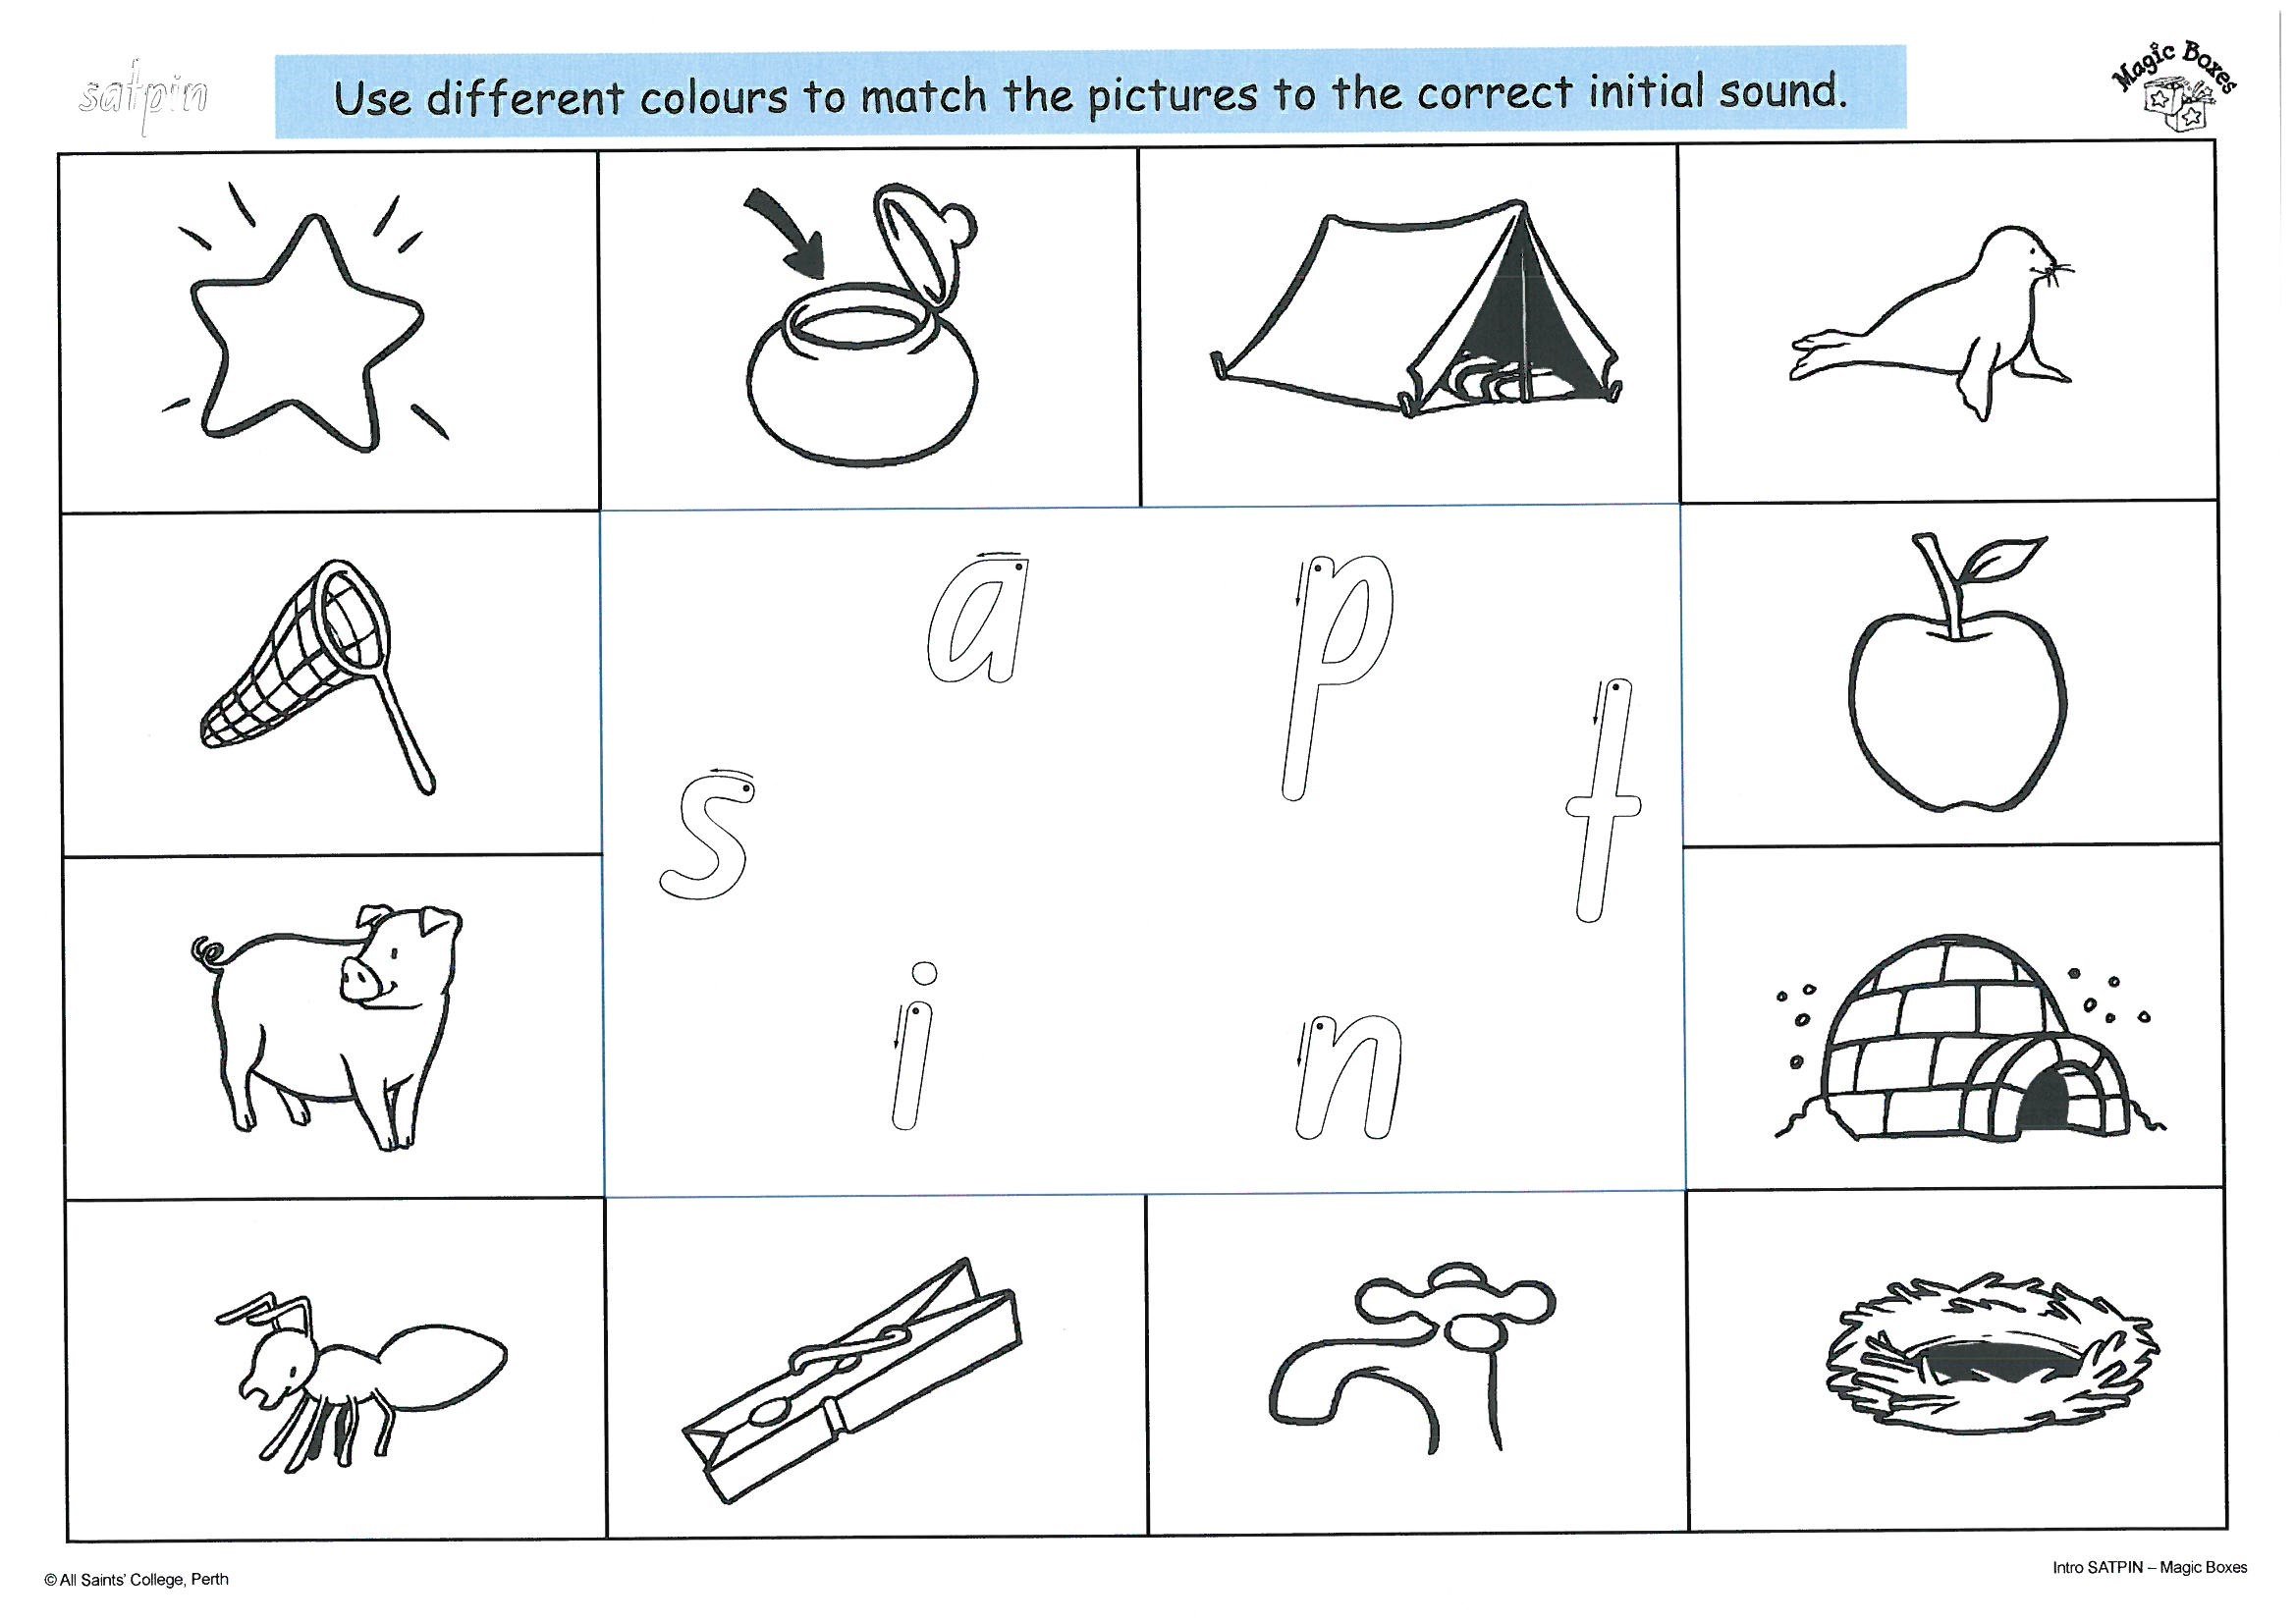 Kindergarten math homework 7951179 - aks-flight.info